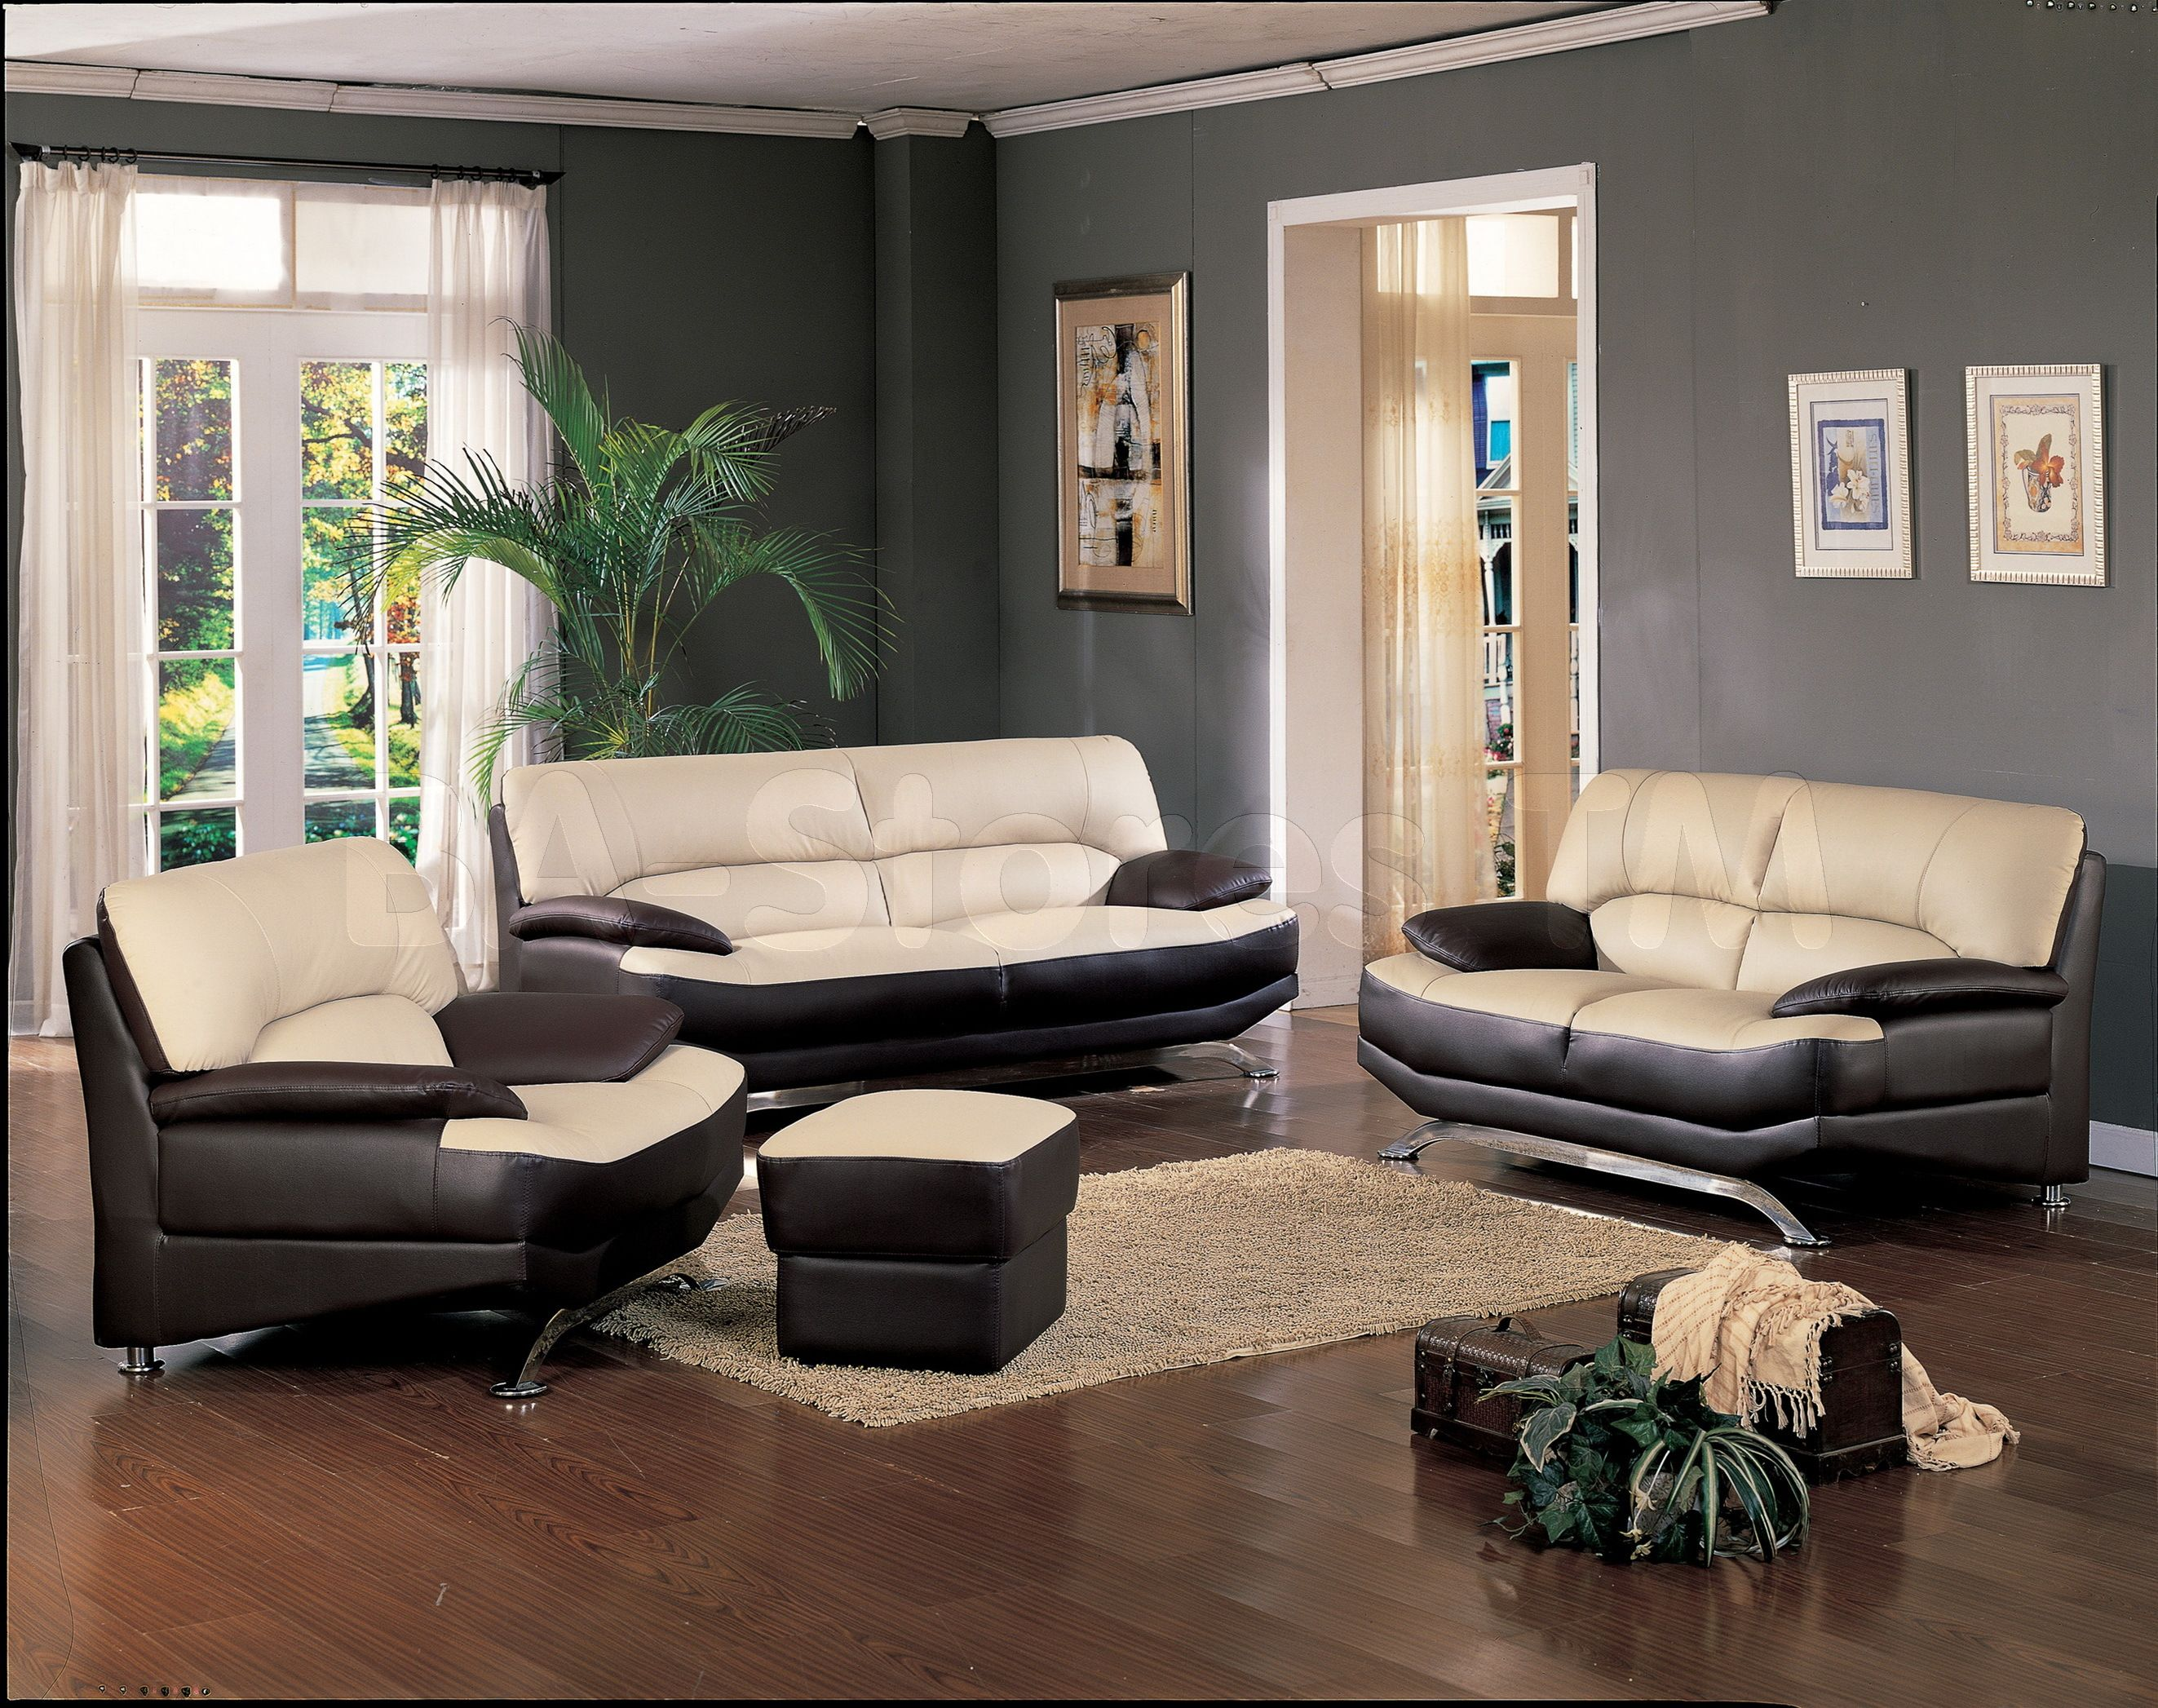 Black And Cream Leather Couch On Dark Brown Wooden Floor Completed By White Fabric Window Curtain Living Room